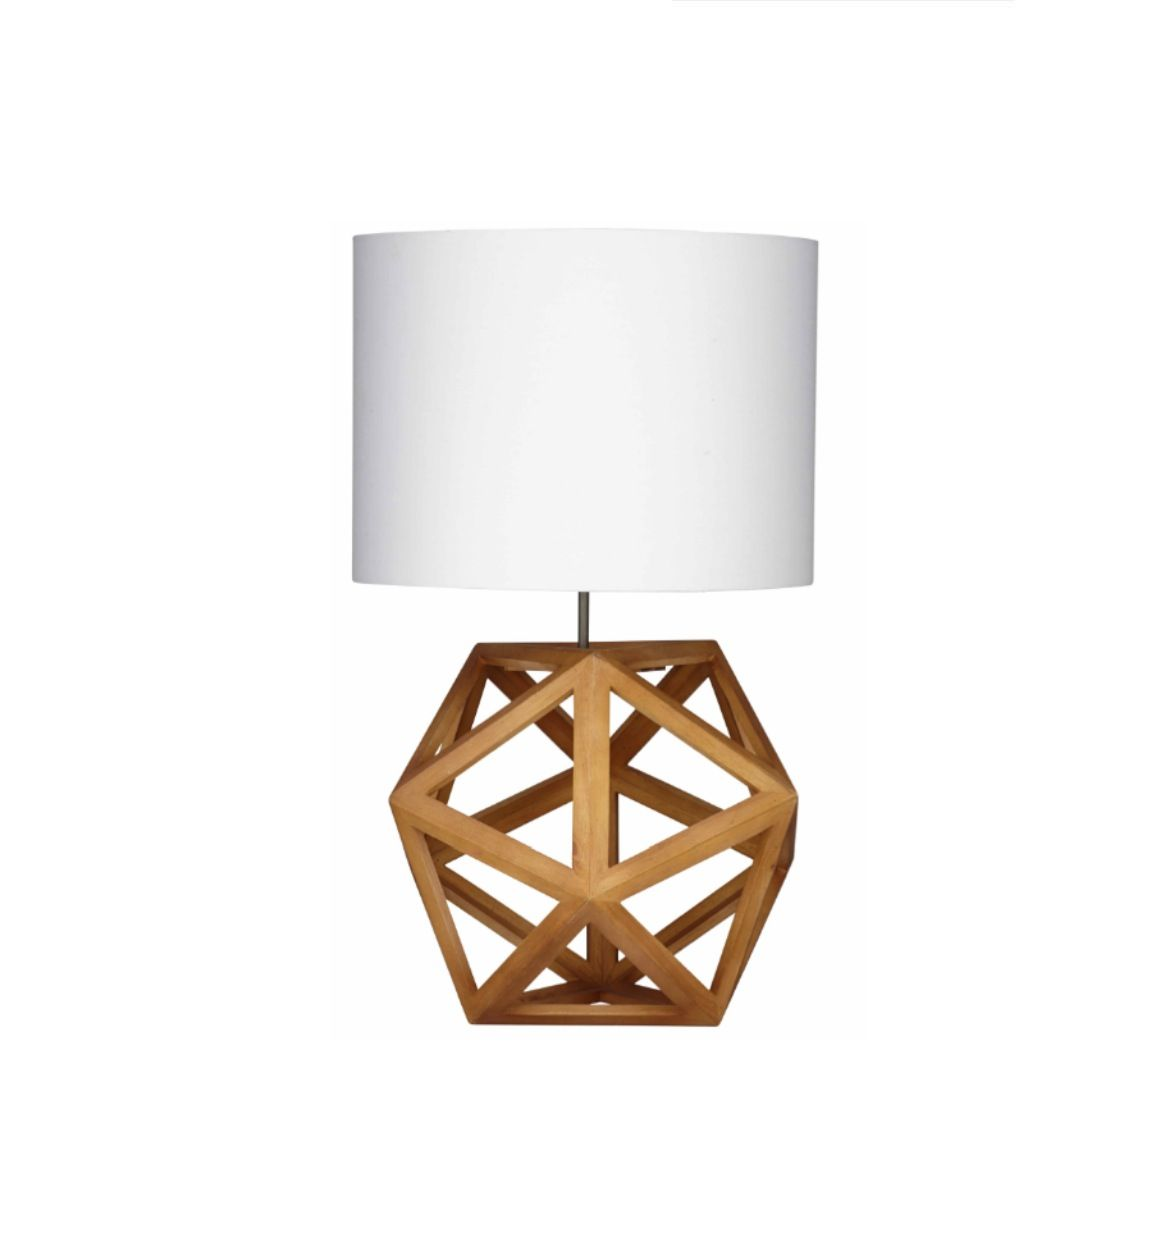 Hexagon table lamp natural timber with white shade scandinavian hexagon table lamp natural timber with white shade scandinavian style 21900 geotapseo Gallery